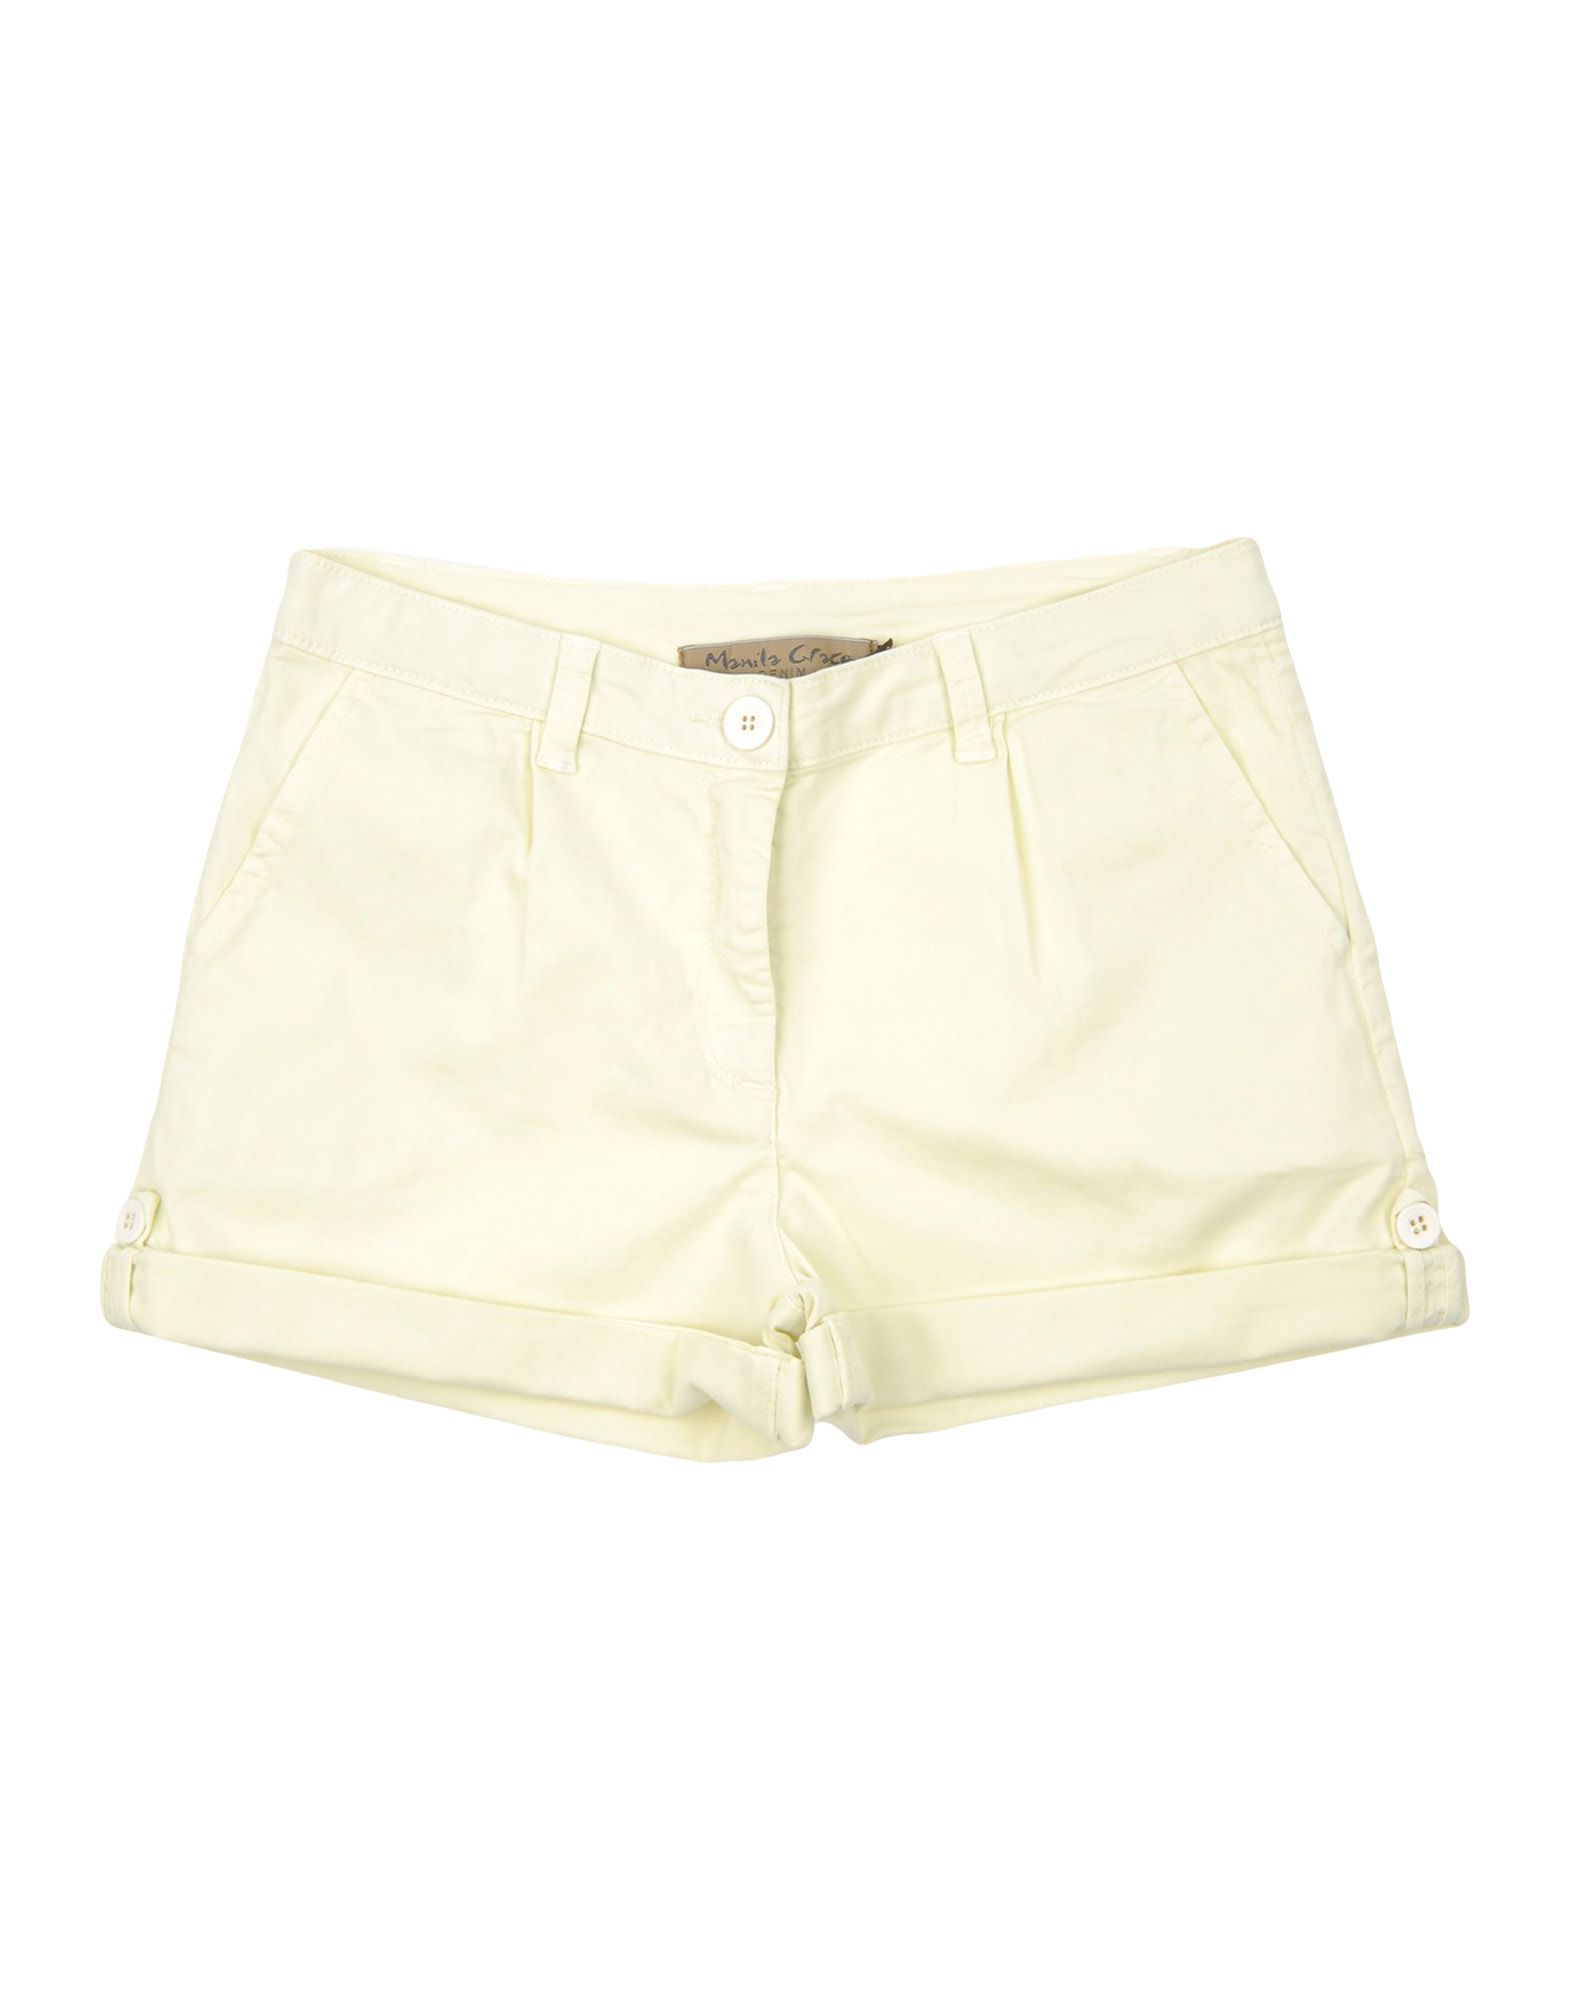 Manila Grace Denim Kids' Shorts In Green